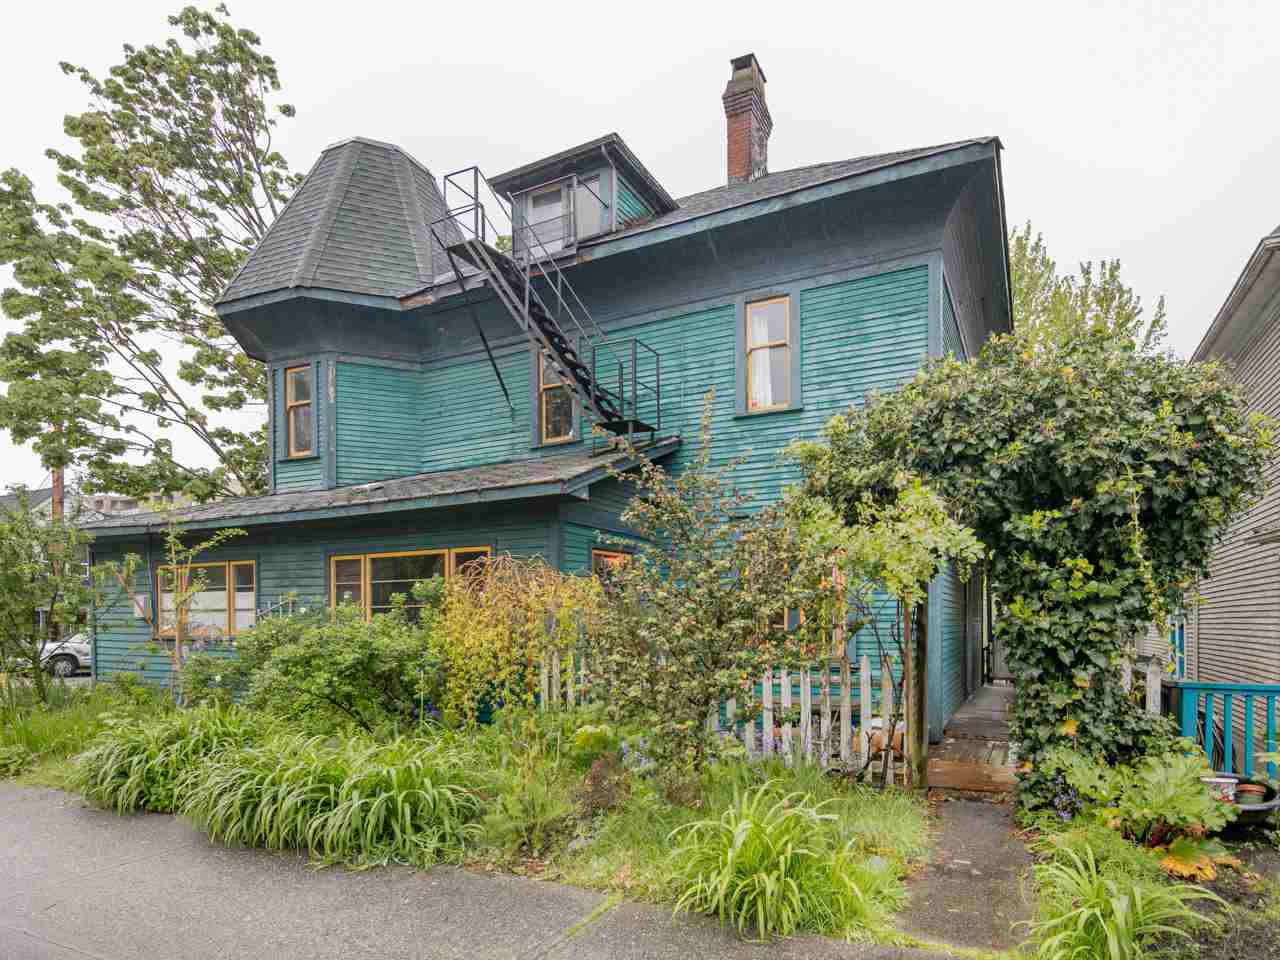 Photo 17: 450 HEATLEY Avenue in Vancouver: Mount Pleasant VE House for sale (Vancouver East)  : MLS® # R2166102